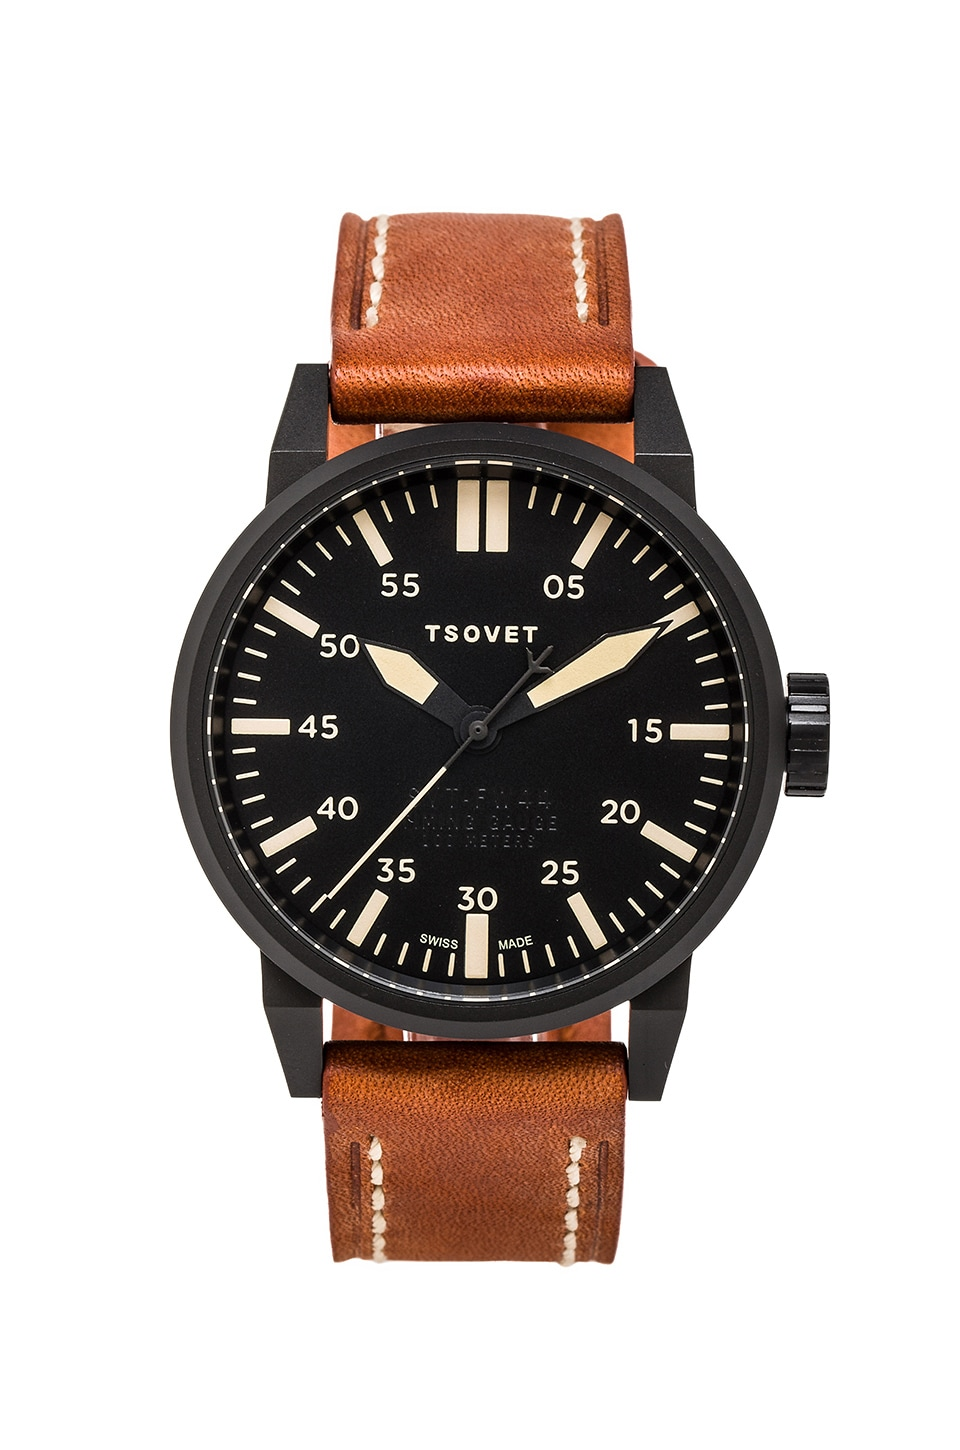 Tsovet SVT-FW44 in Black & Brown